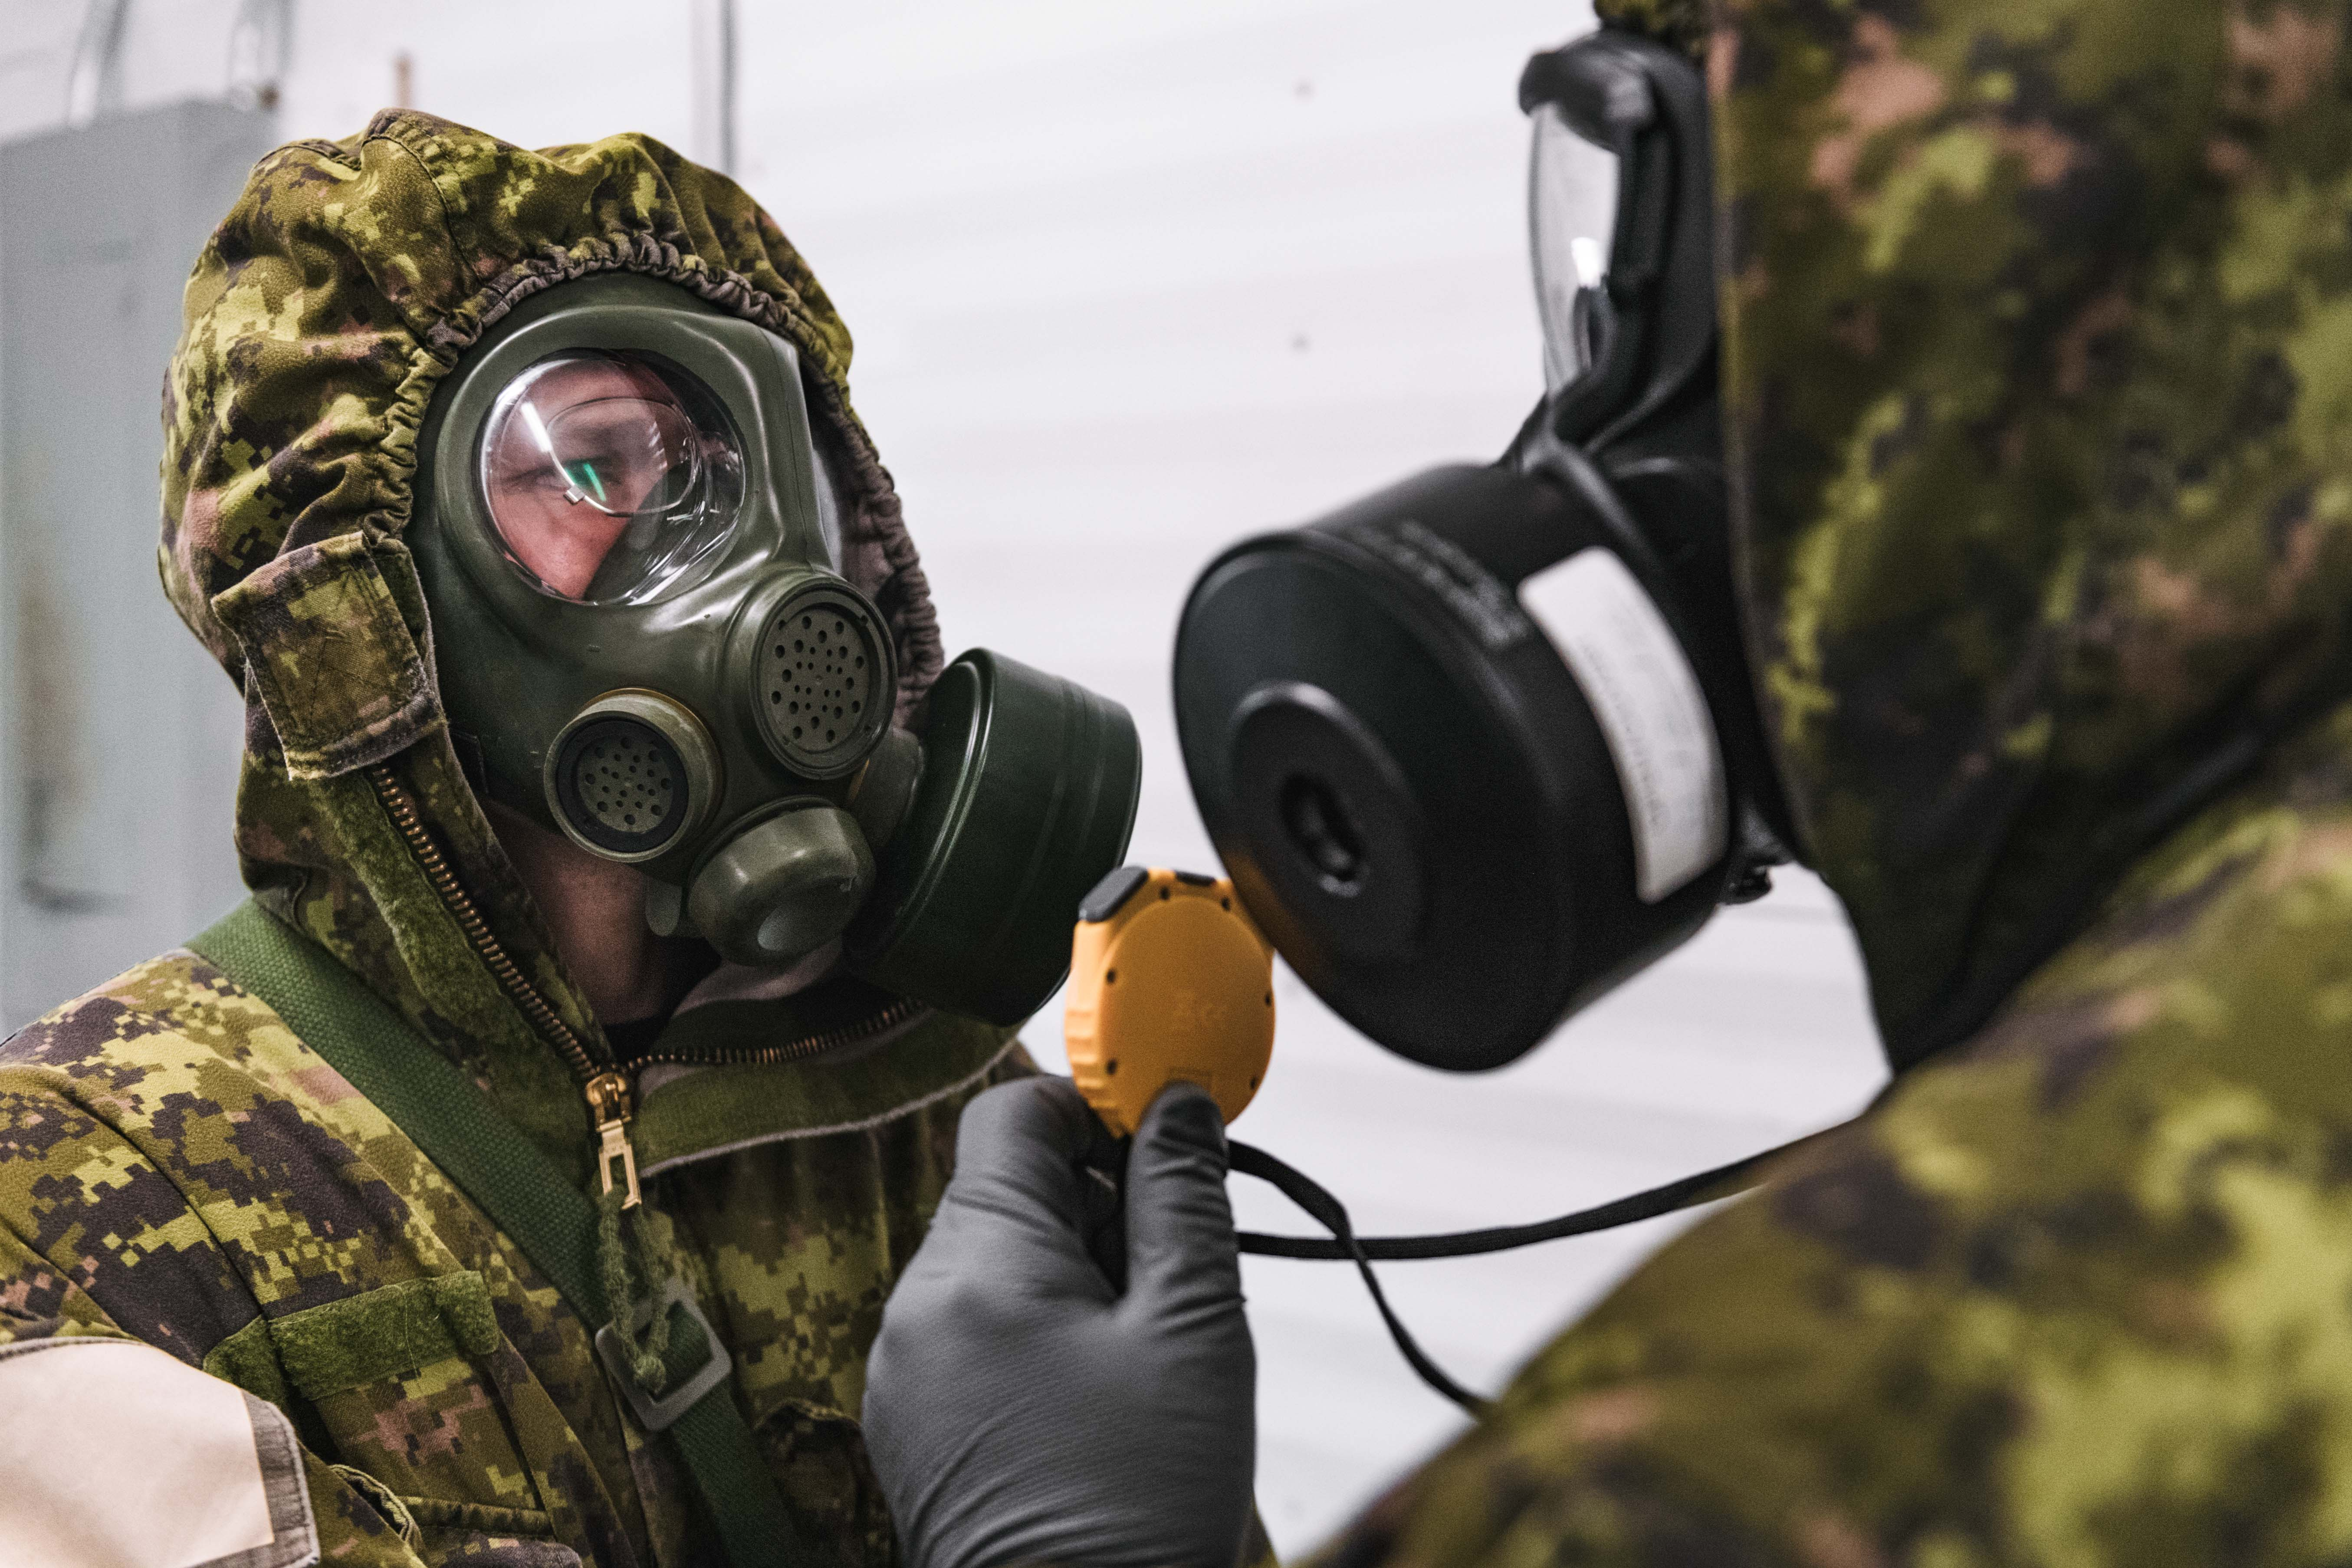 A recruit takes part in chemical, biological, radiological and nuclear defense training.